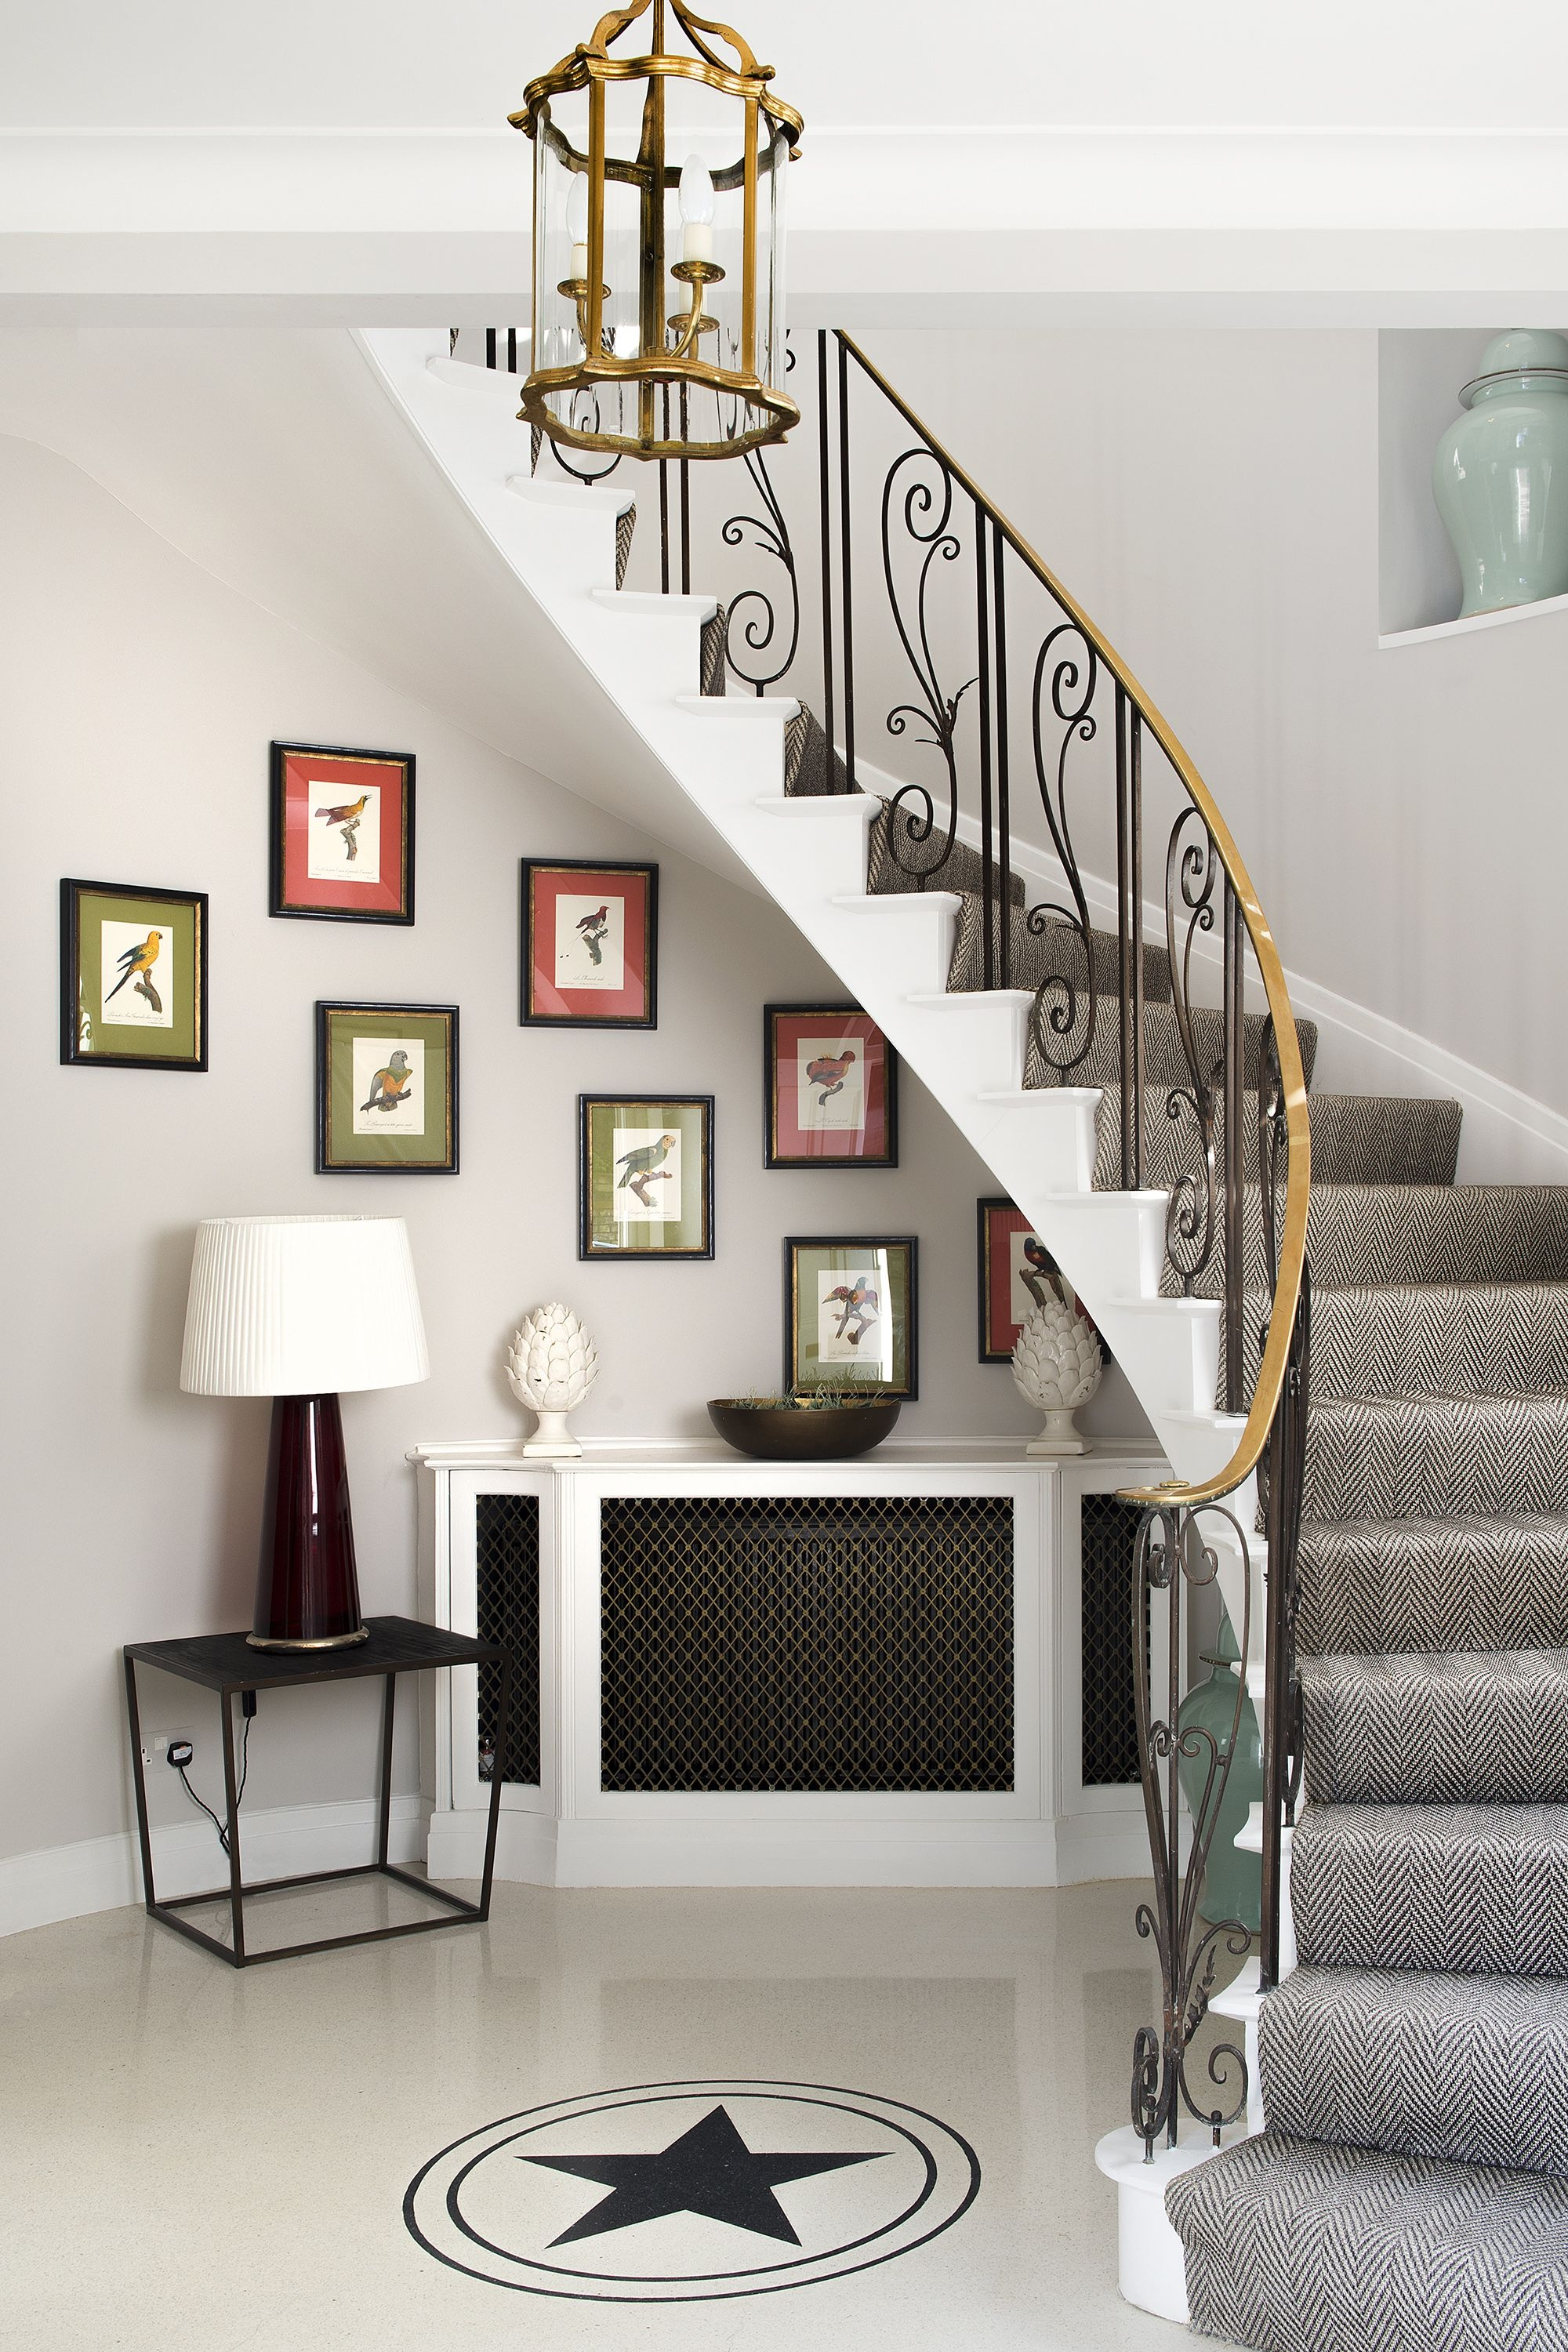 27 Stylish Staircase Decorating Ideas How To Decorate Stairways | Pop Design For Stairs Wall | Frame Up | Main Entrance | Wall Paper | Entry Wall | Luxury